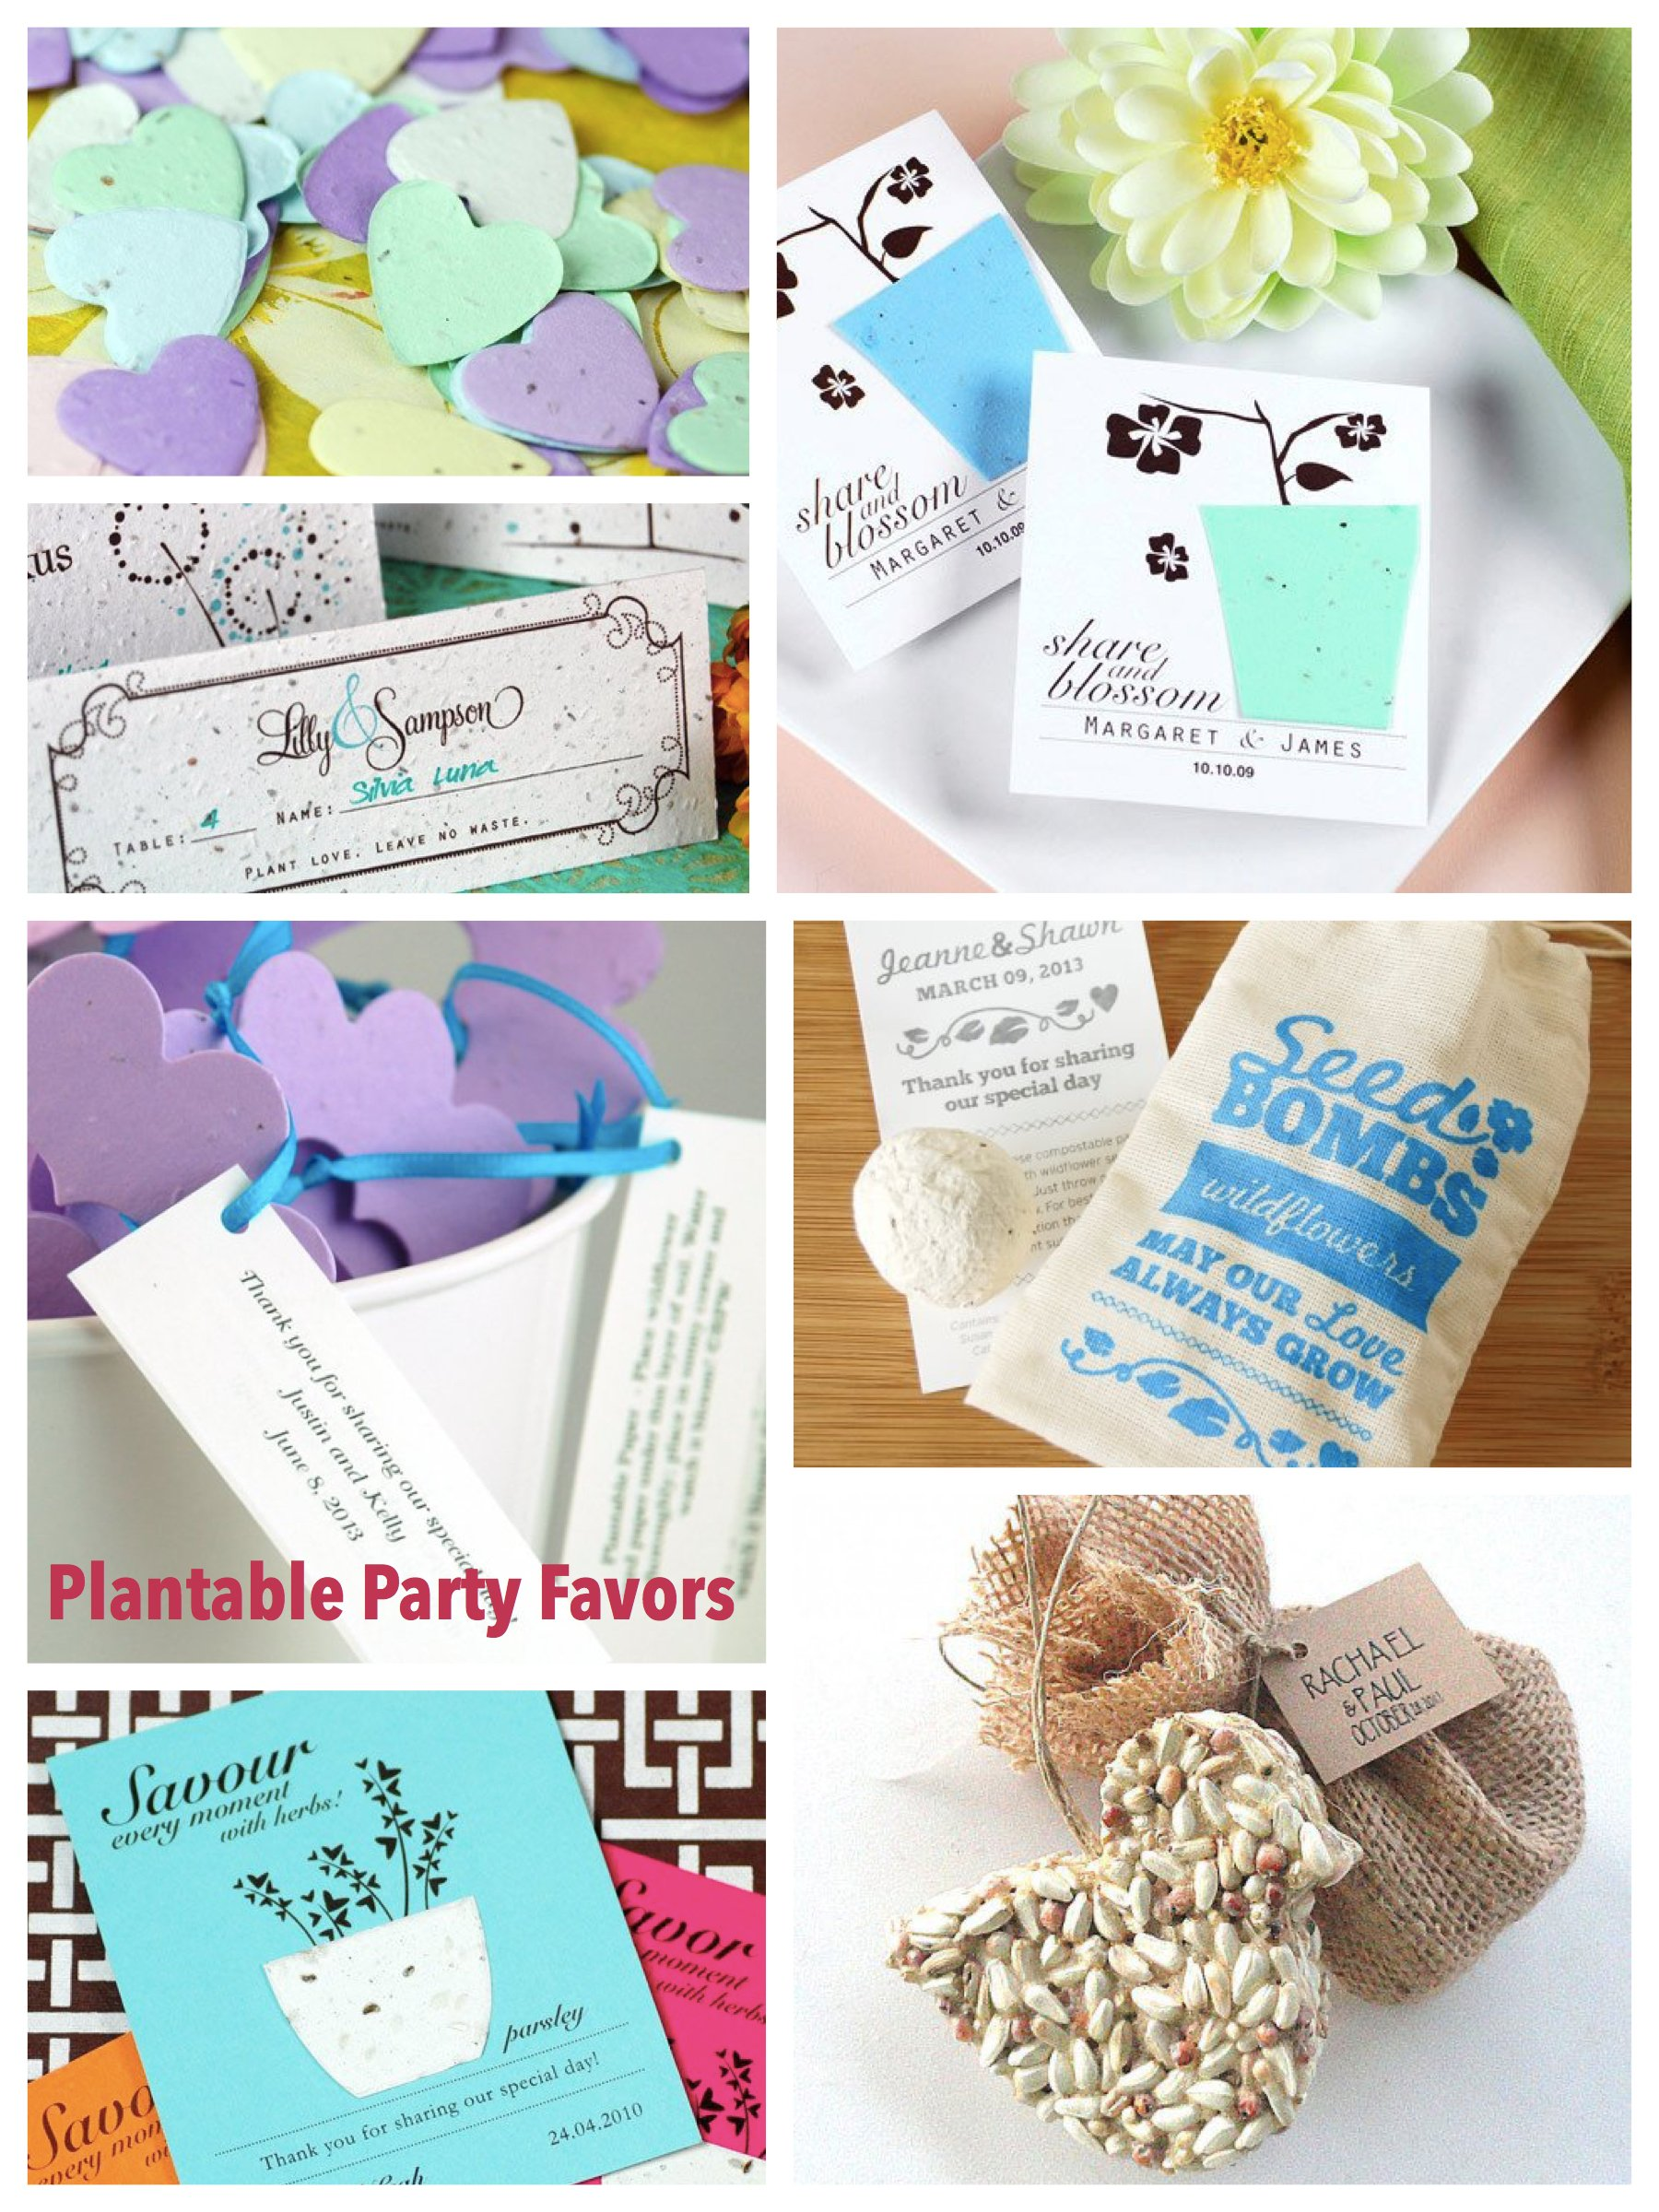 Plantable Seed Party Favors